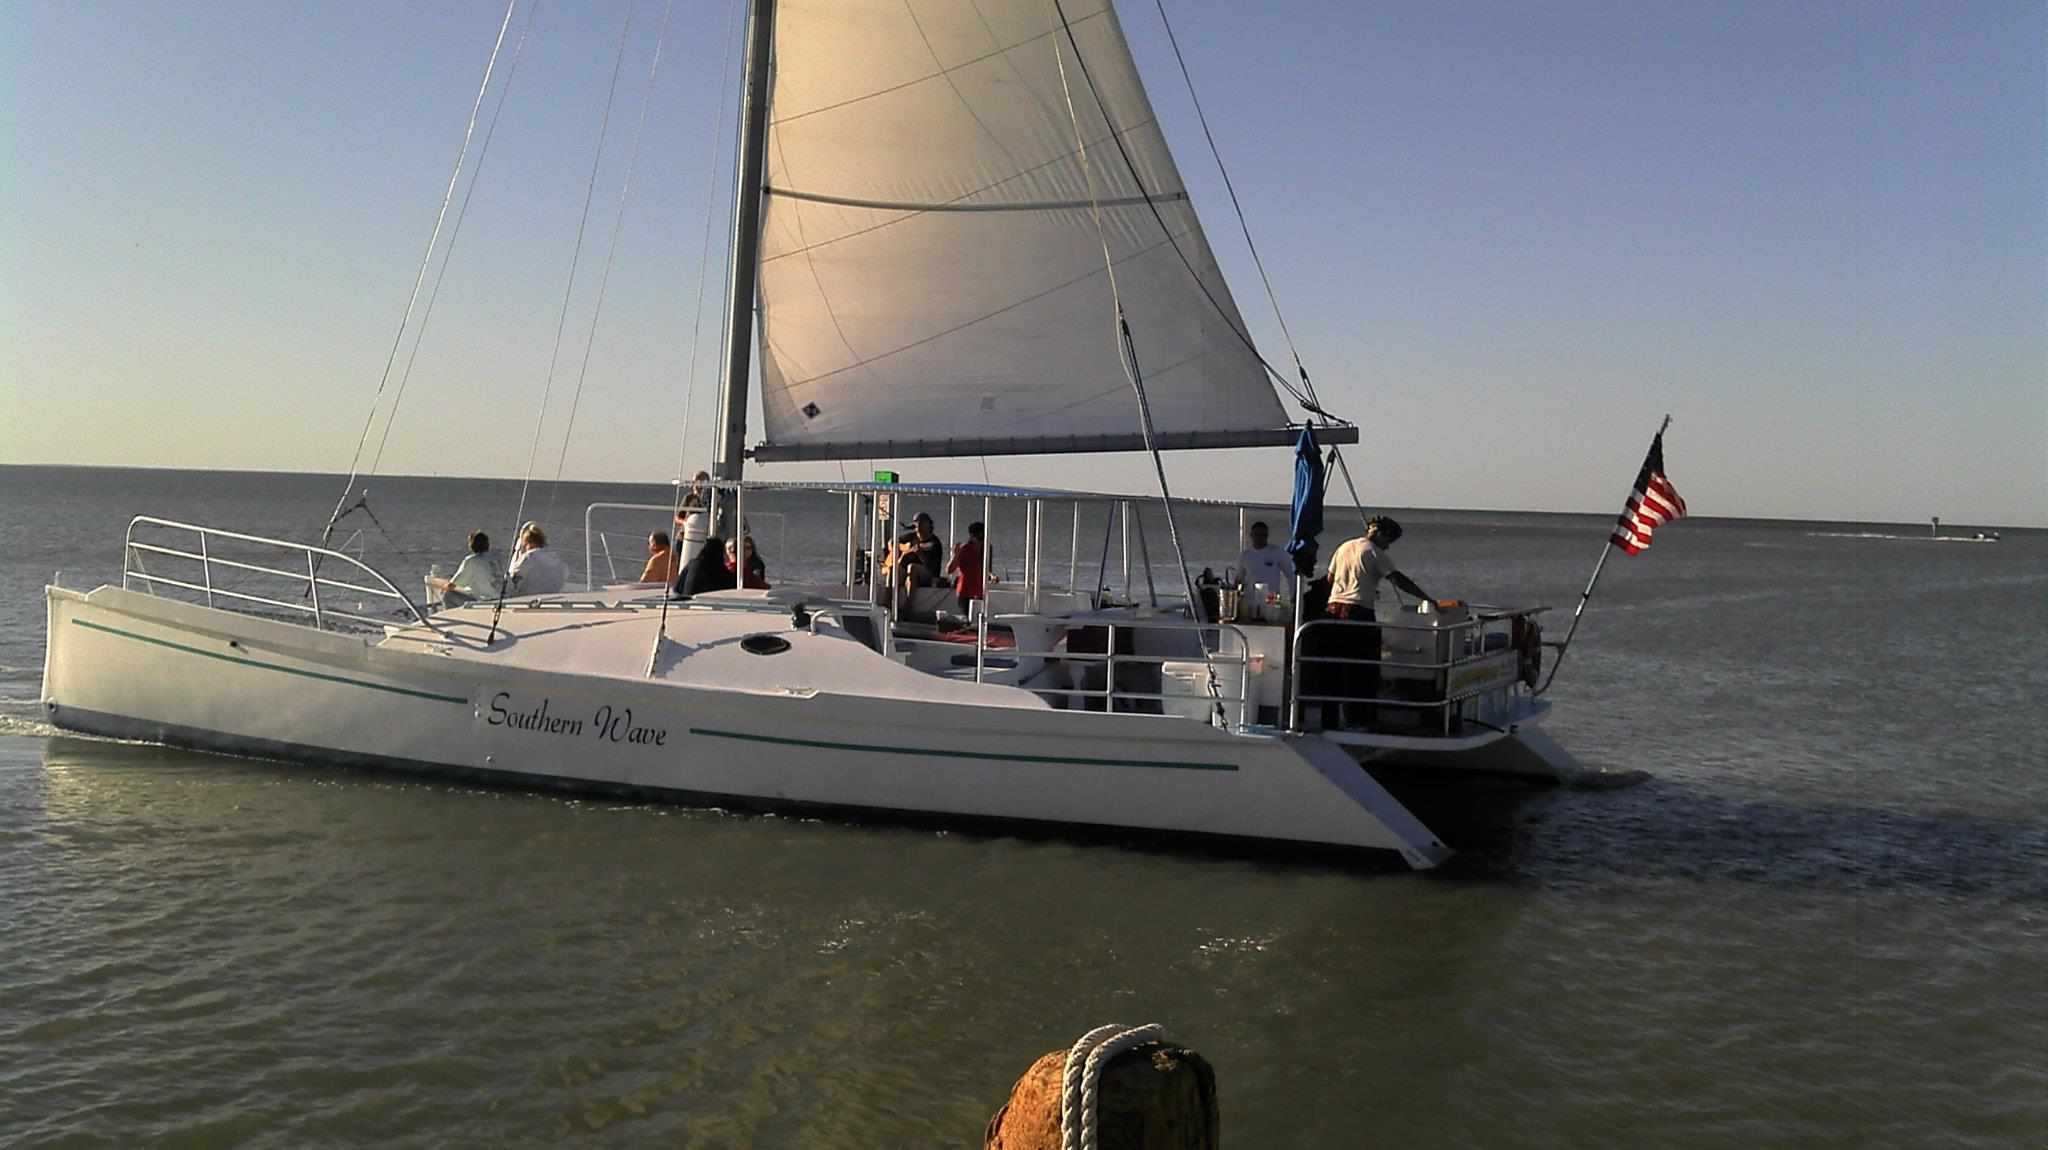 A sailboat setting off to sea on the Gulf